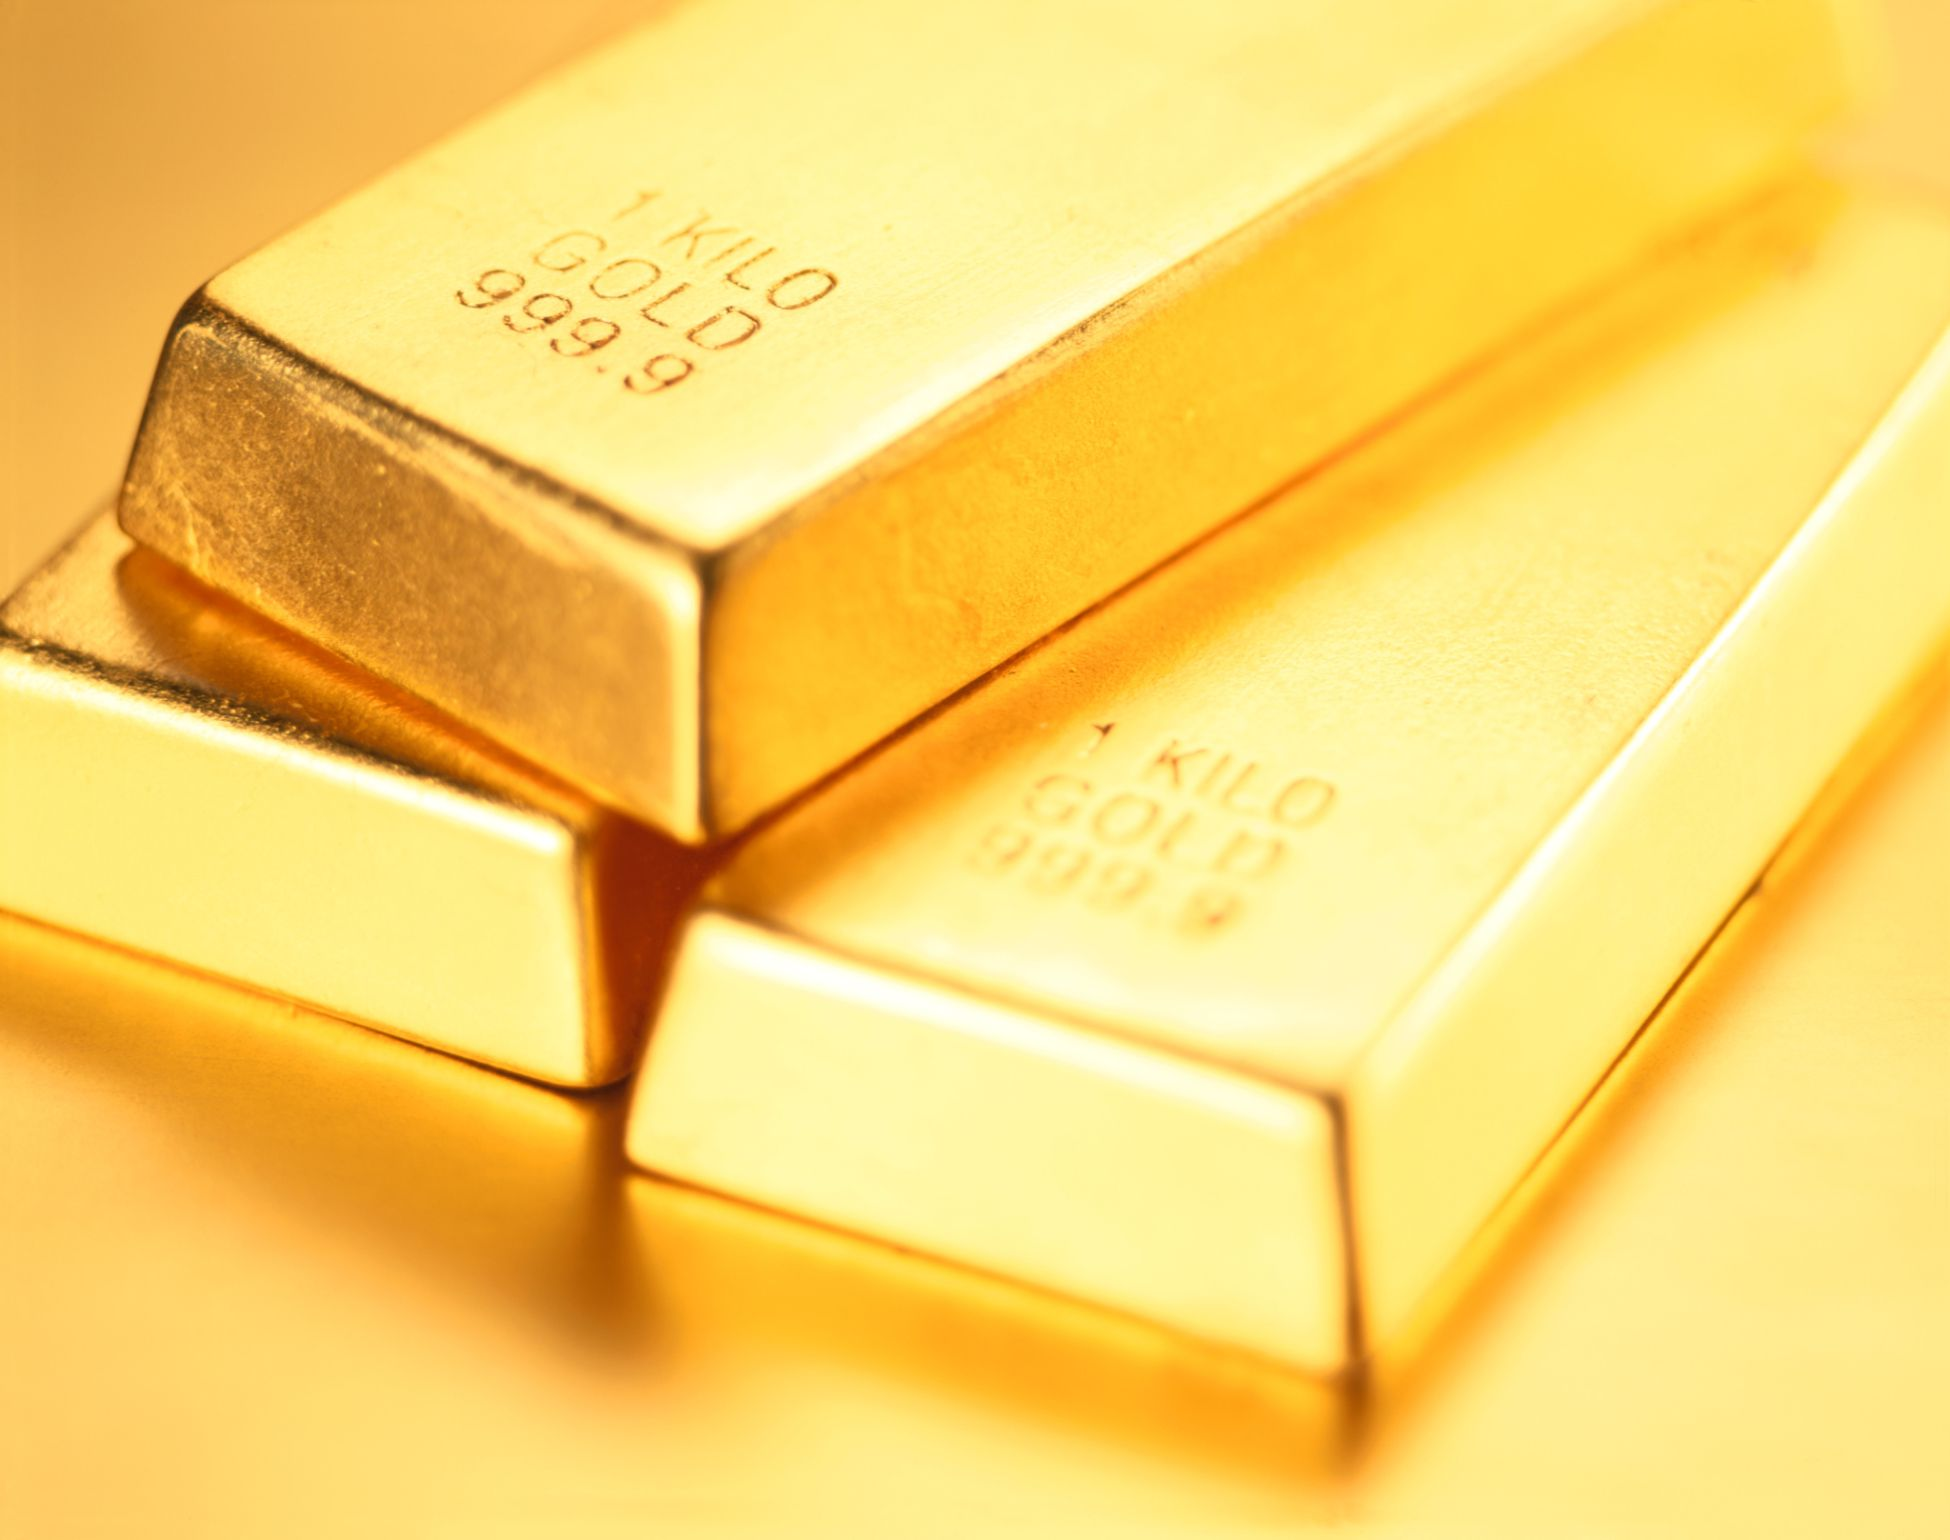 Three coveted gold bars during the asset inflation of gold